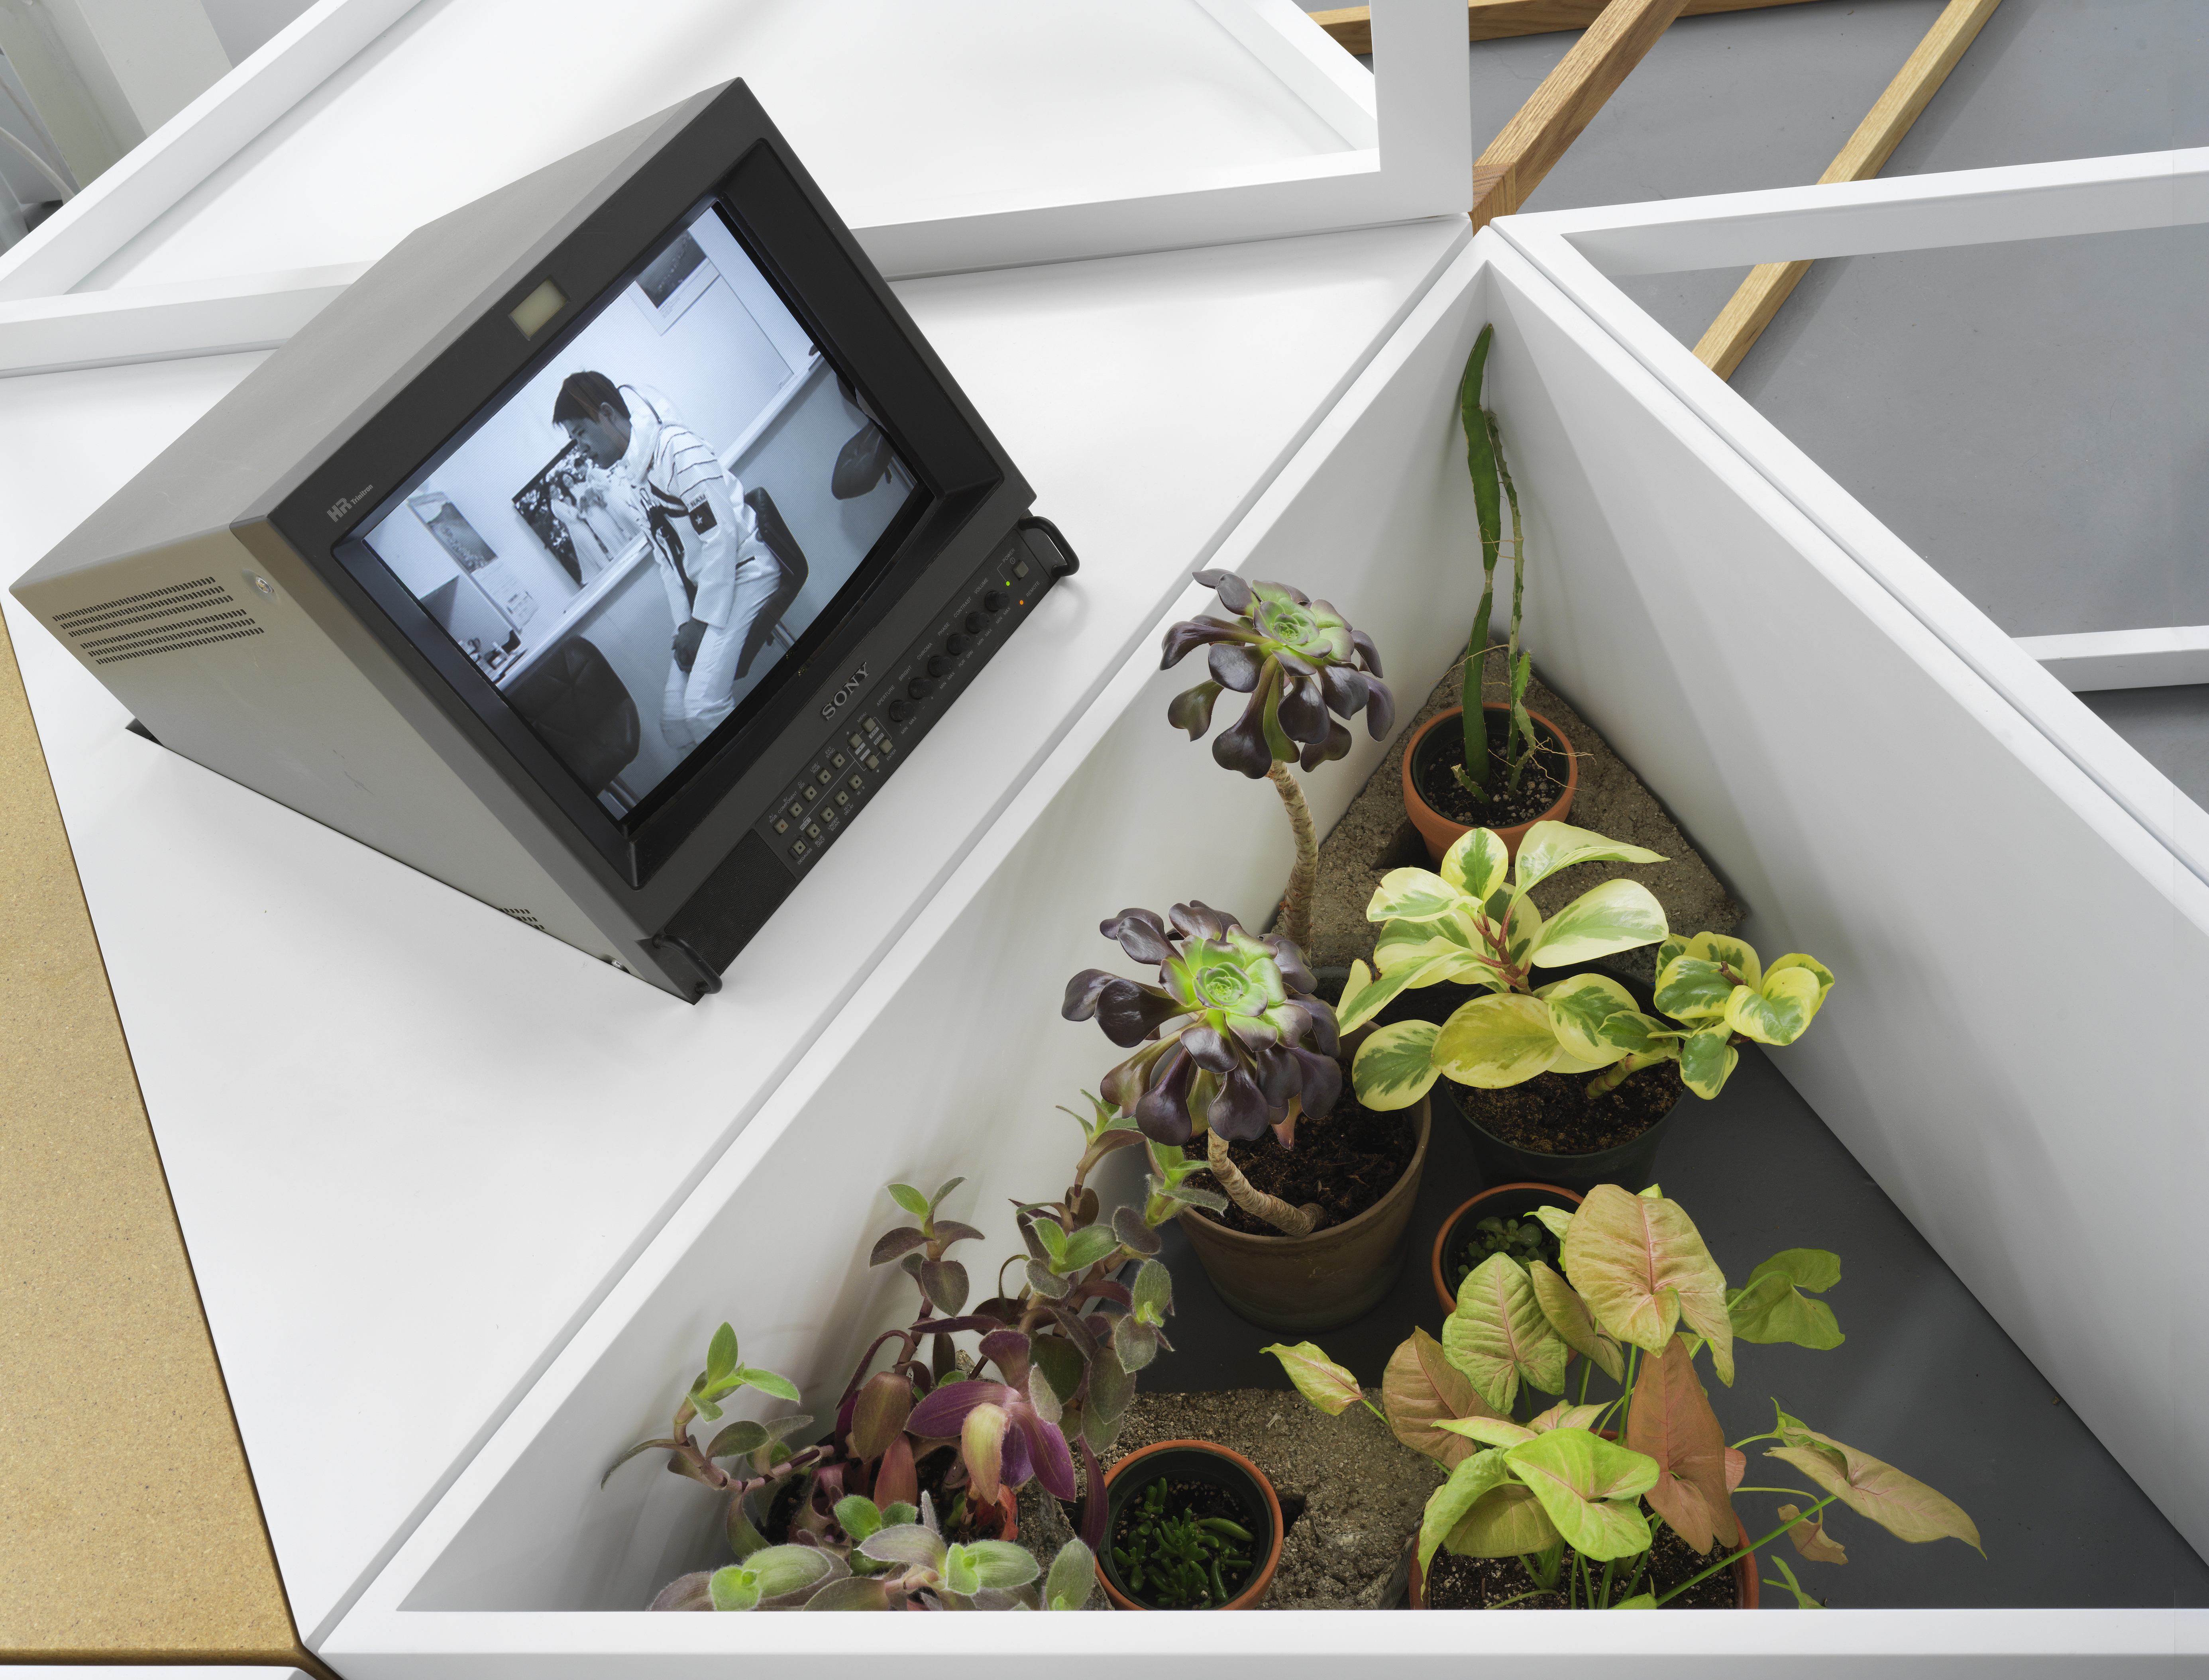 Image: A closeup photo taken from above of the wooden triangle segments holding various potted plants with green, purple, and yellow leaves. A small, grey television is set on top of a neighboring triangle segment. The TV screen is tilted upwards and shows a black and white image of a cosmonaut sitting sideways on a chair in a space suit without a helmet. Image courtesy of the artist.